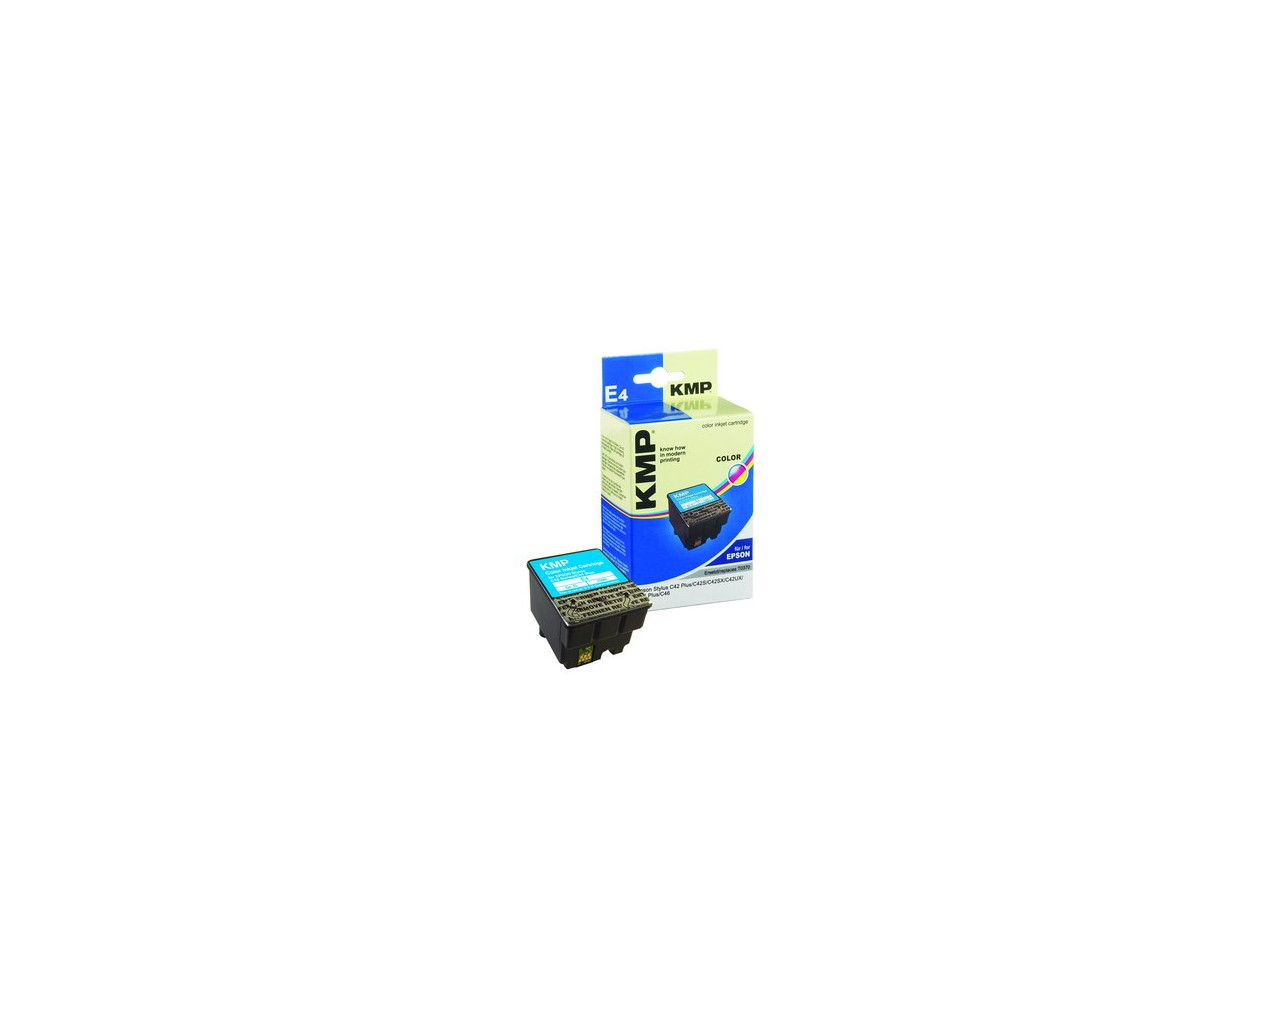 KMP Epson E4 ink cartridge color 25ml